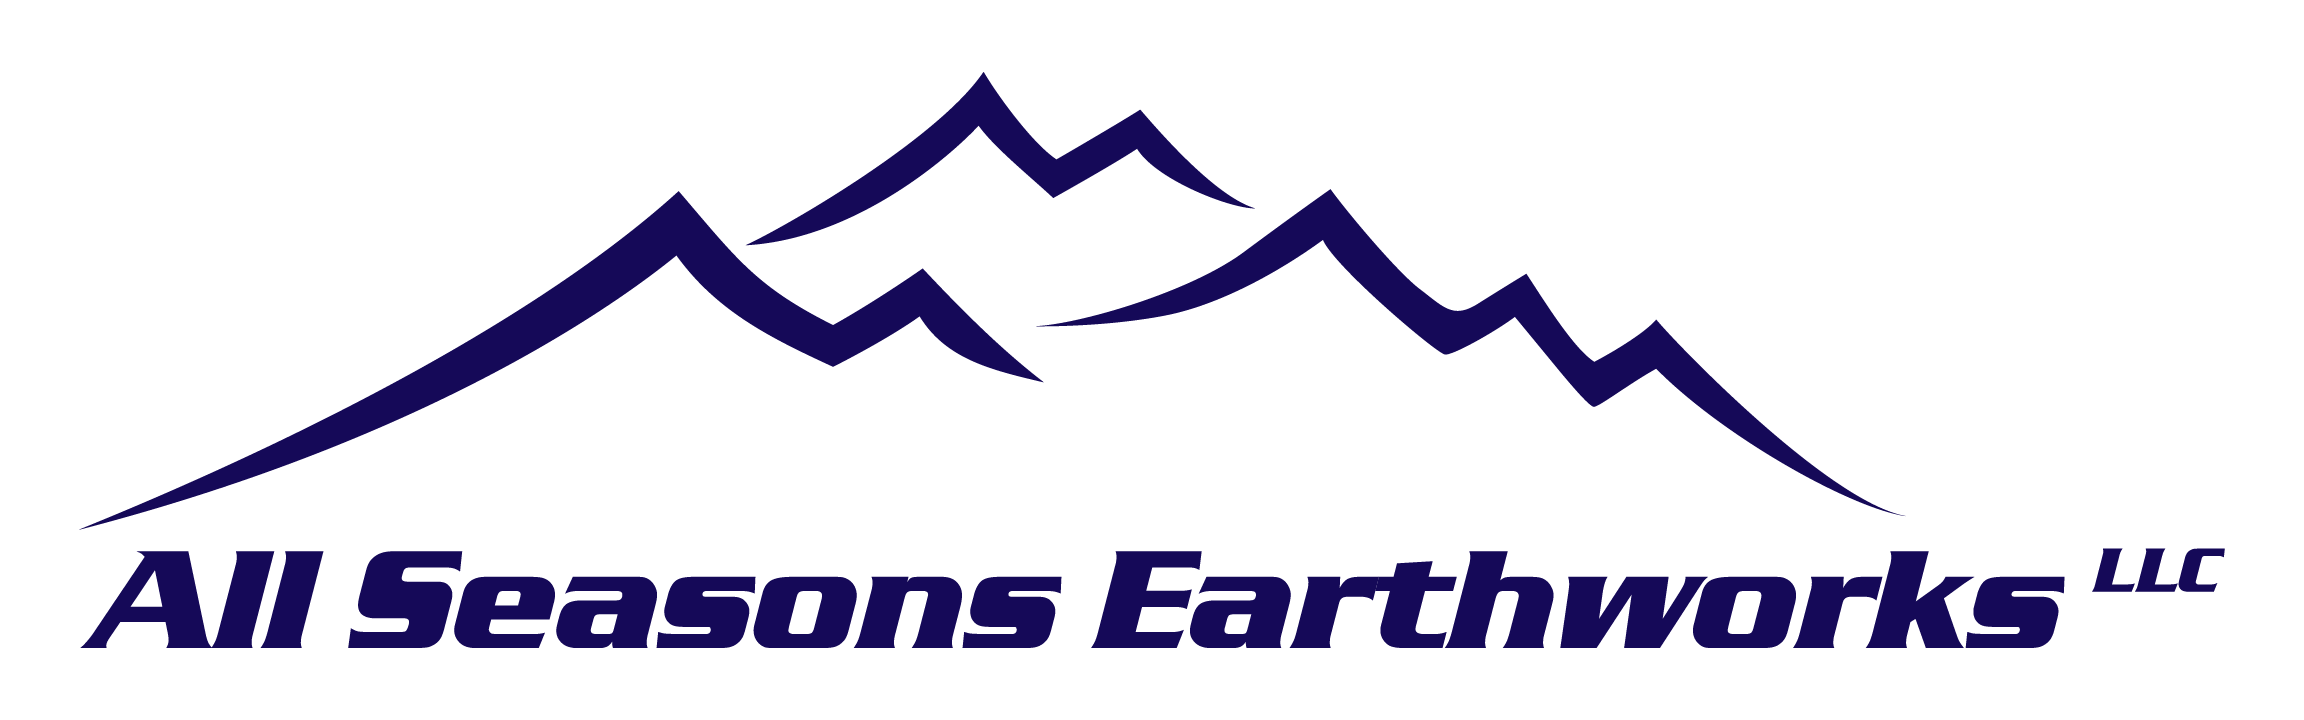 All Seasons Earthworks